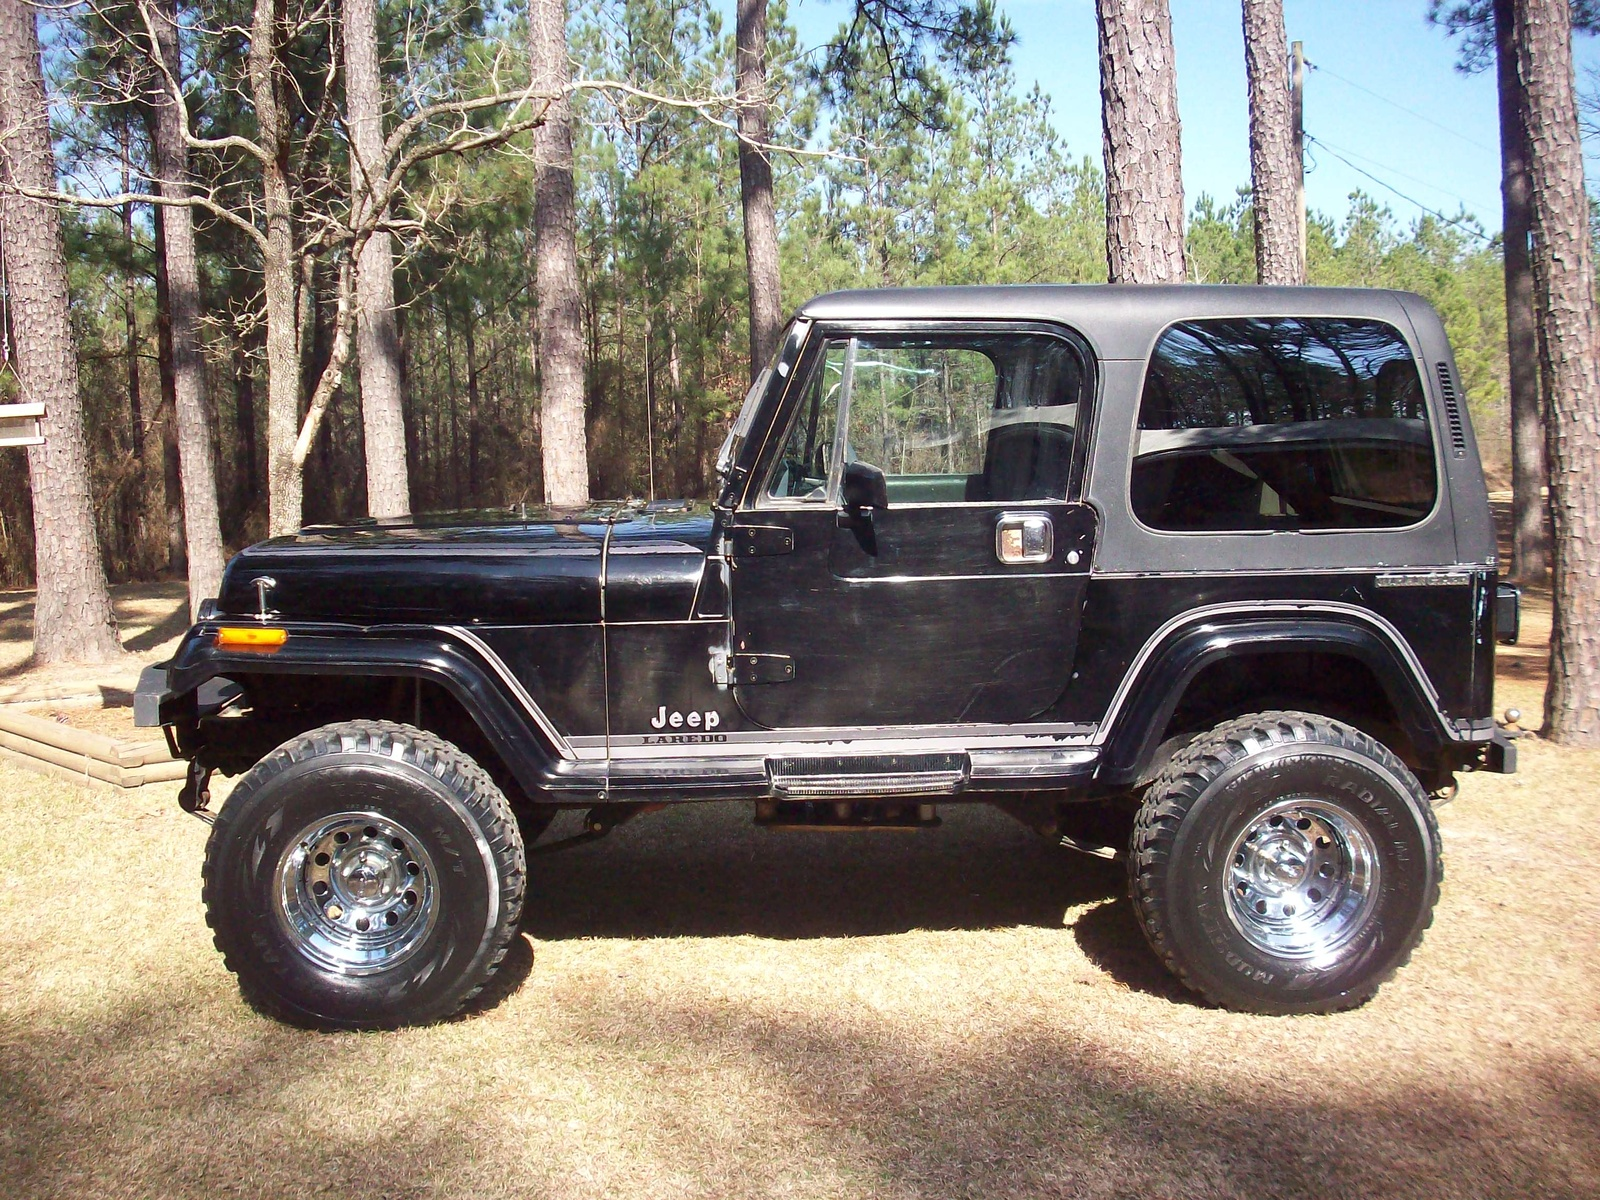 1986 Jeep CJ7 Pictures C15783 pi19411059 also 2018 Jeep Grand Wagoneer New Concept likewise 2019 Jeep Grand Cherokee Spy Shots besides Dodge Vision together with 1952 Jeep Willys Cj3a All Original. on jeep wagoneer by year